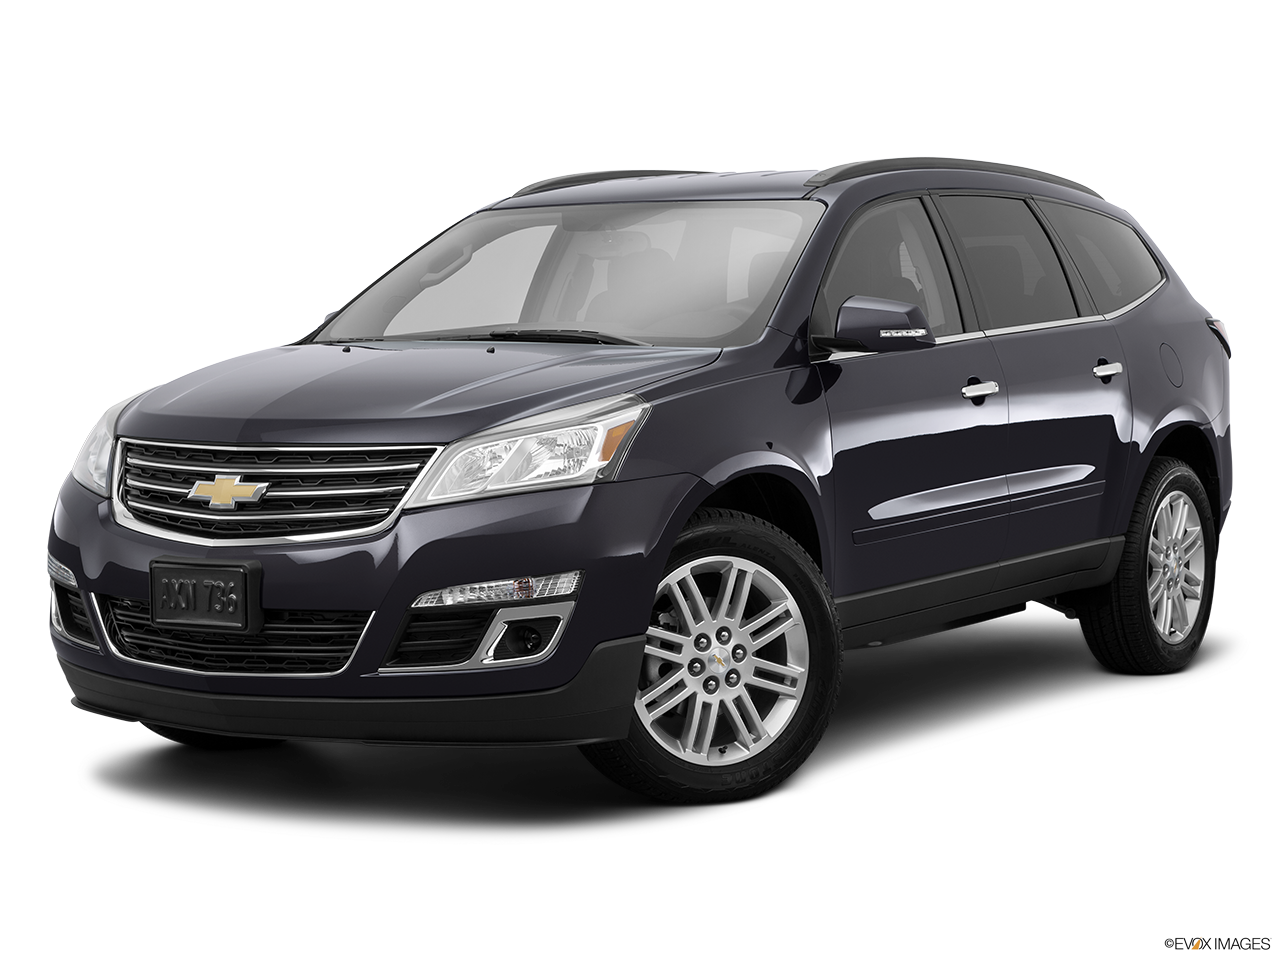 2015 chevrolet traverse information and photos zombiedrive. Black Bedroom Furniture Sets. Home Design Ideas